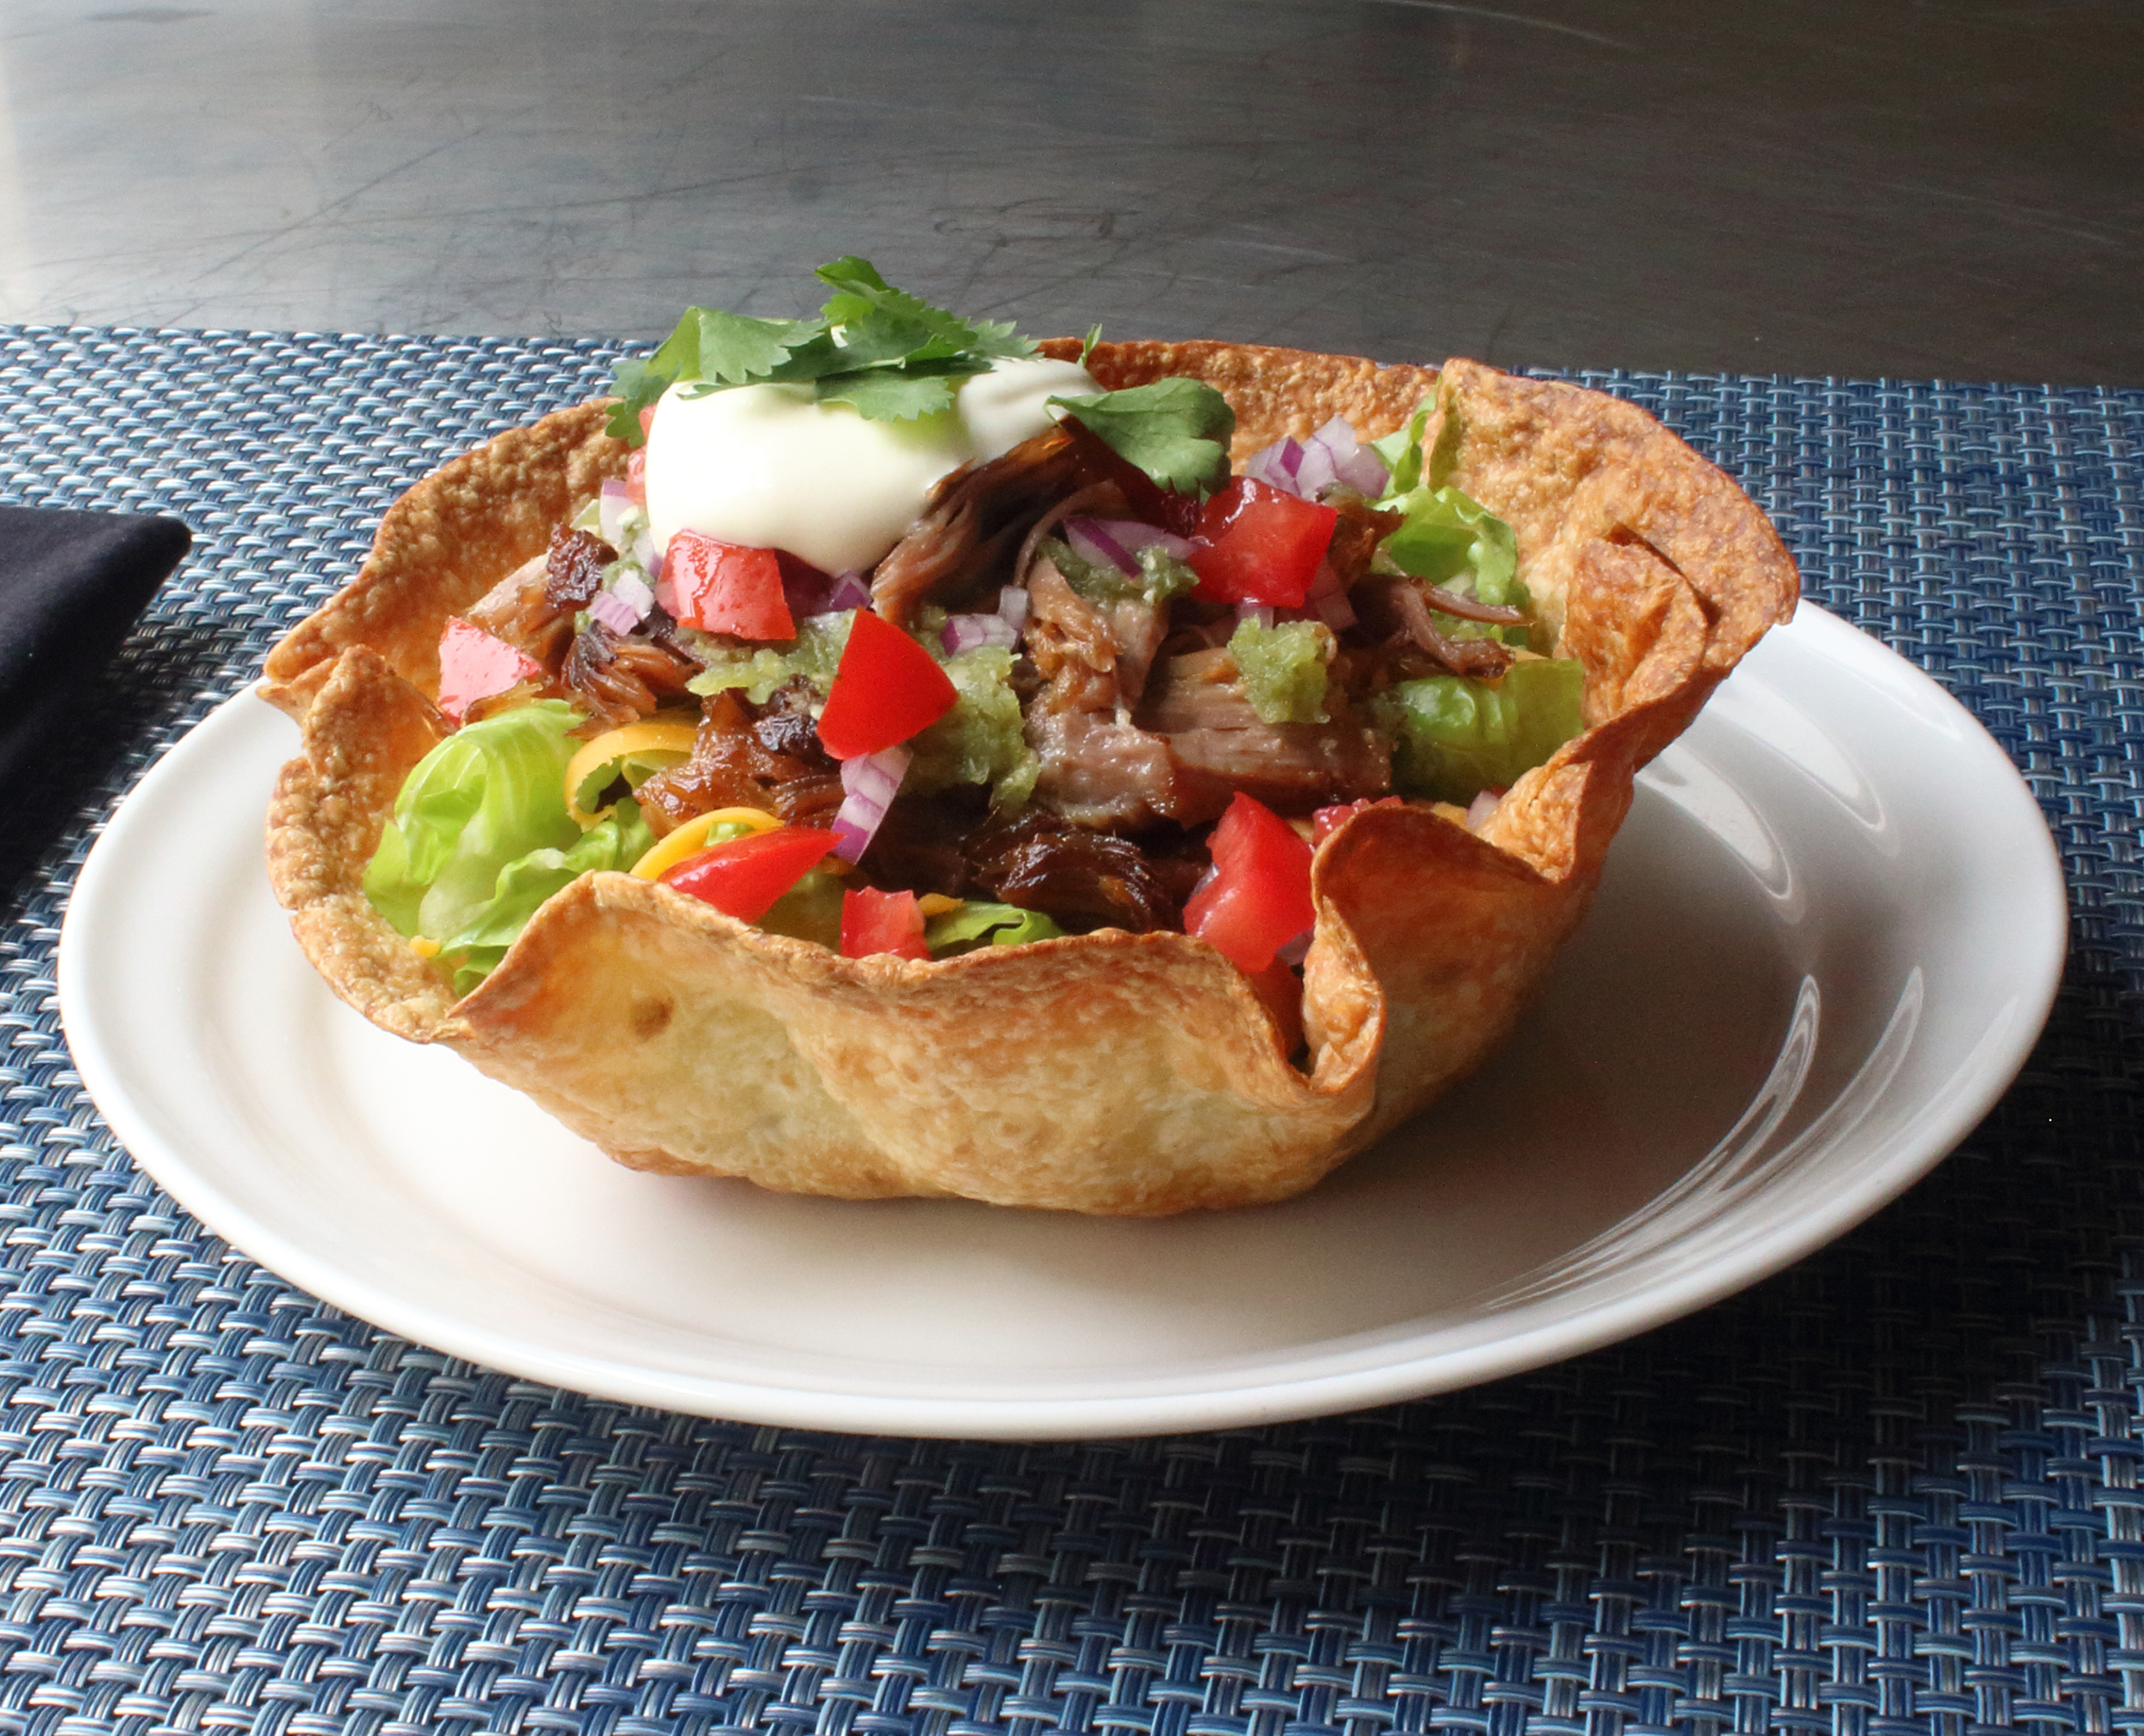 Crispy Basket Burritos Baked Tortilla Bowls Allrecipes